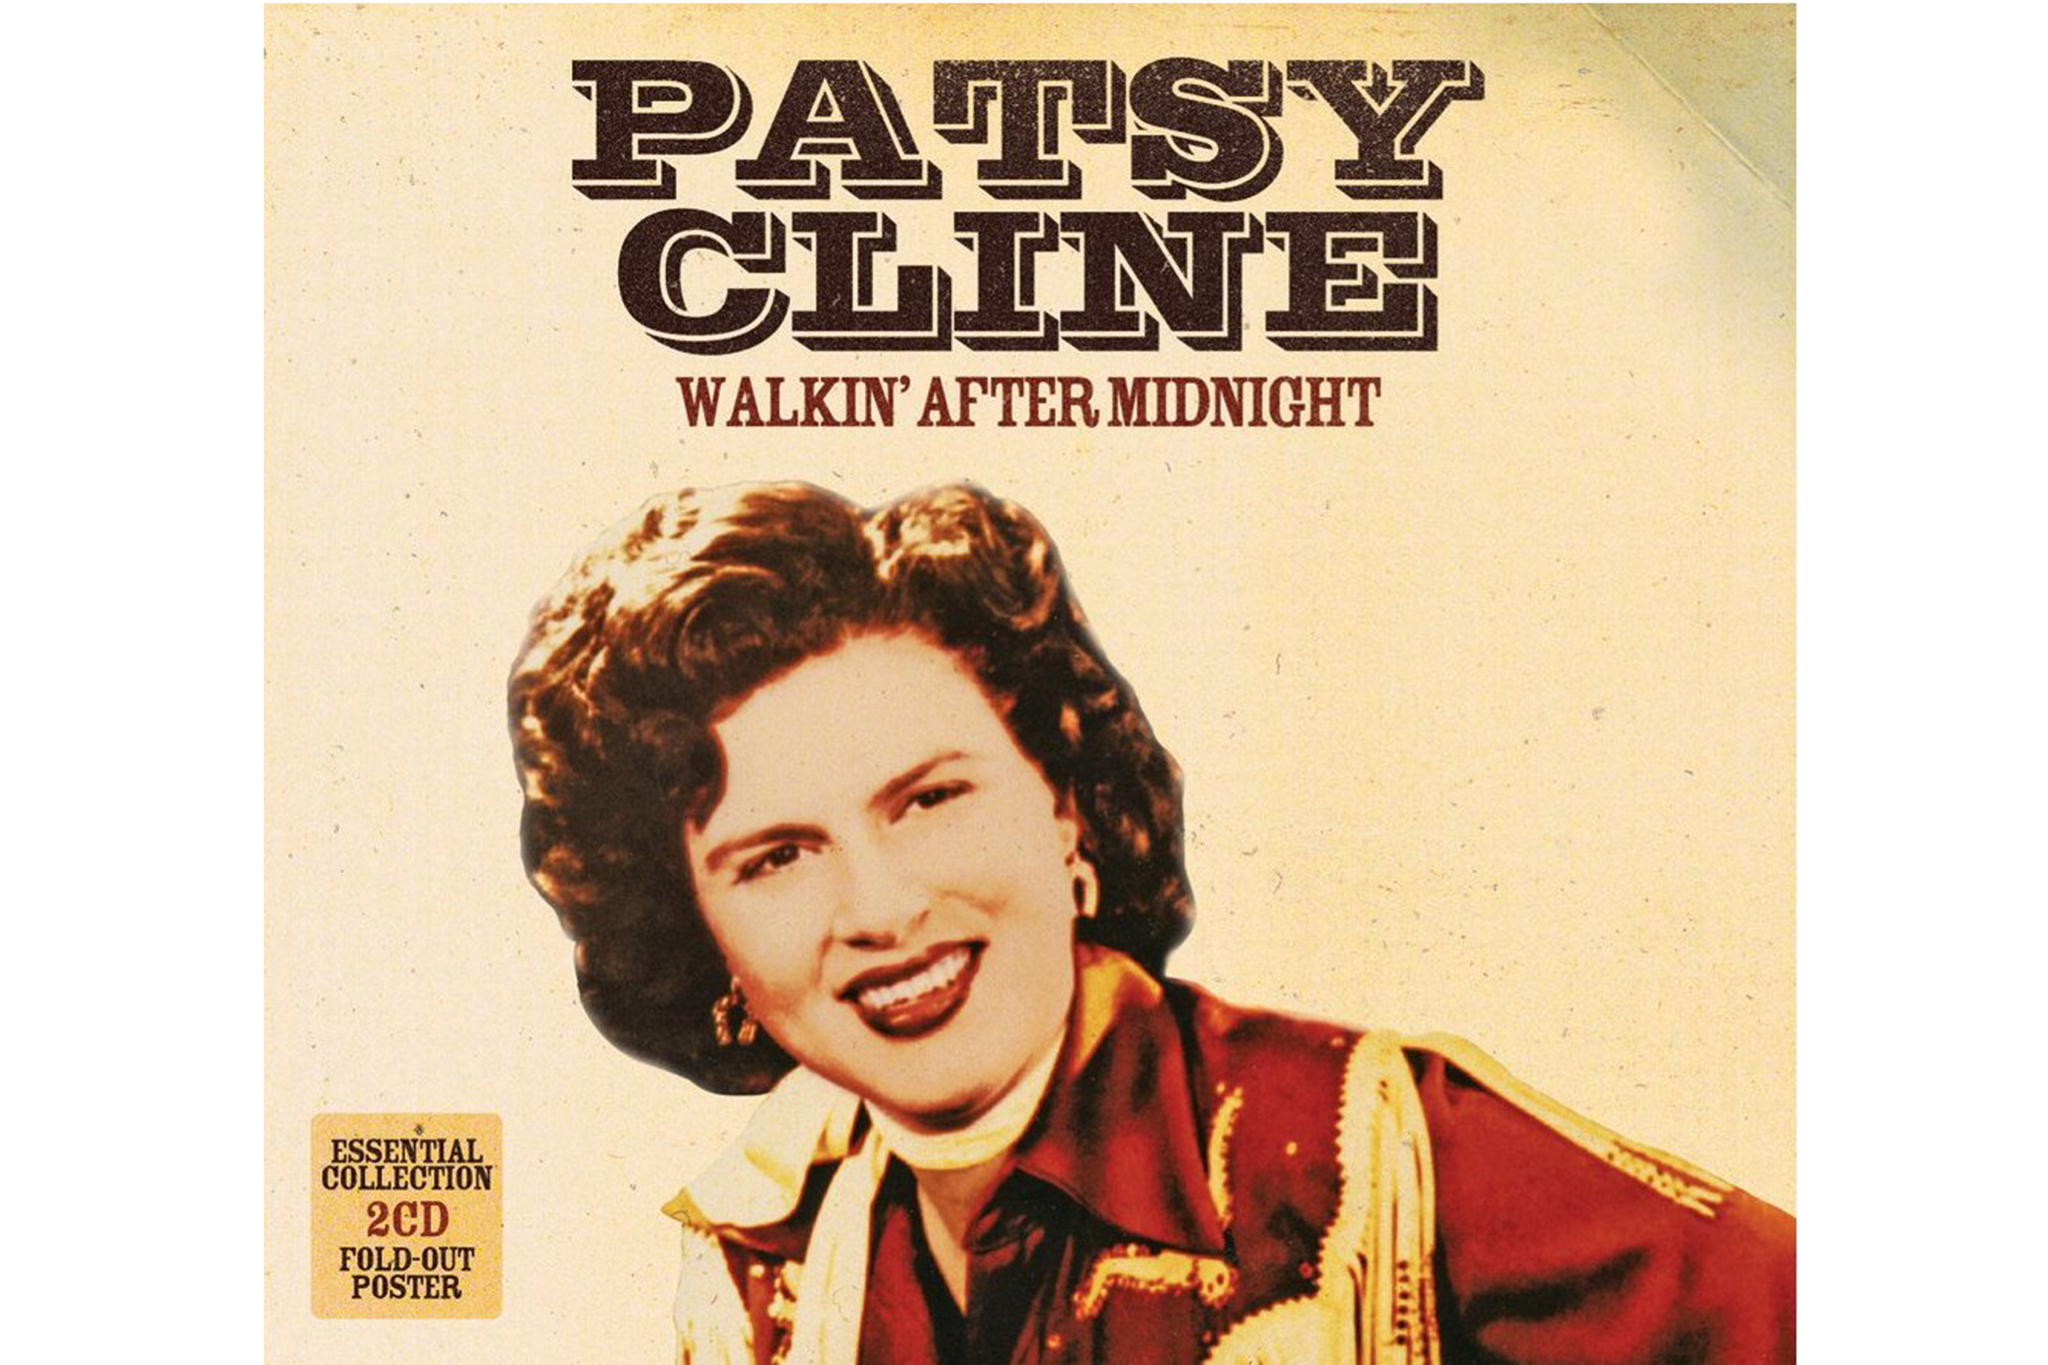 """Walkin' After Midnight"" by Patsy Cline"